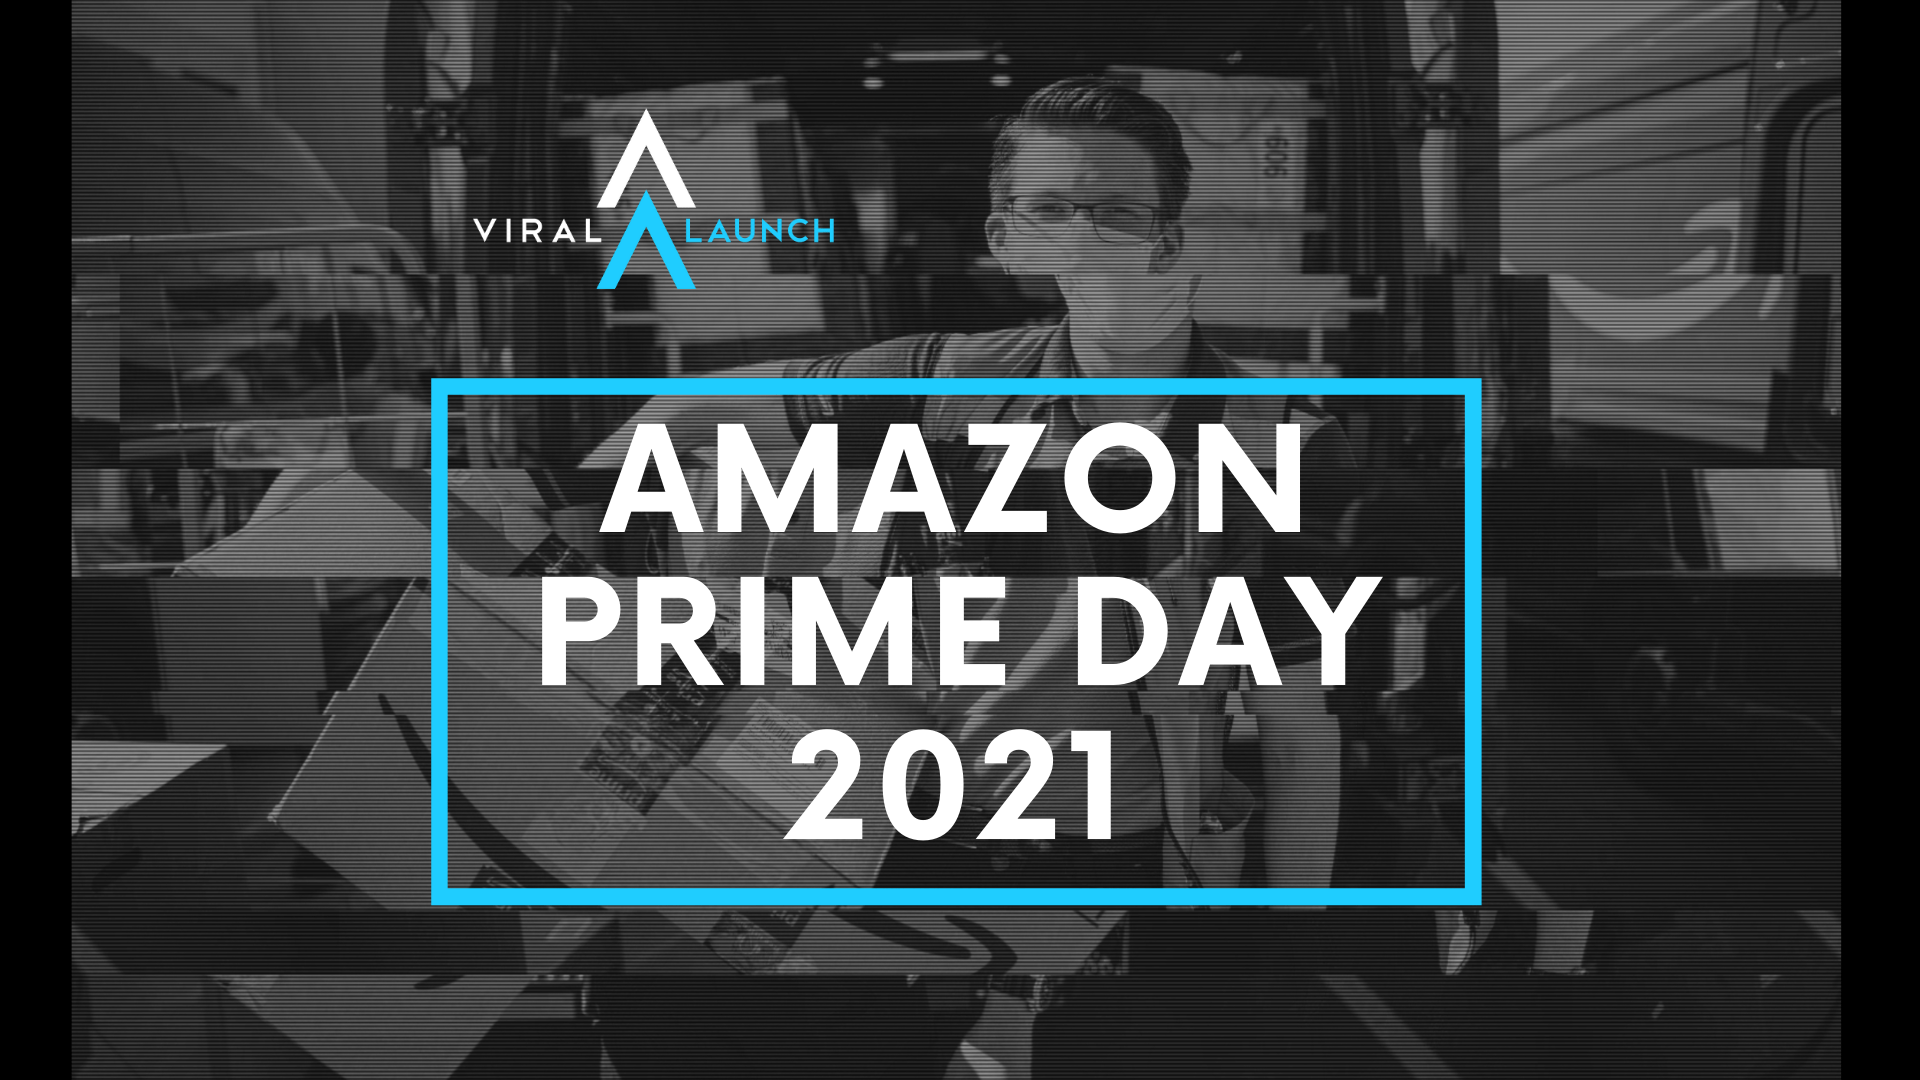 Amazon Prime Day 2021 | Viral Launch